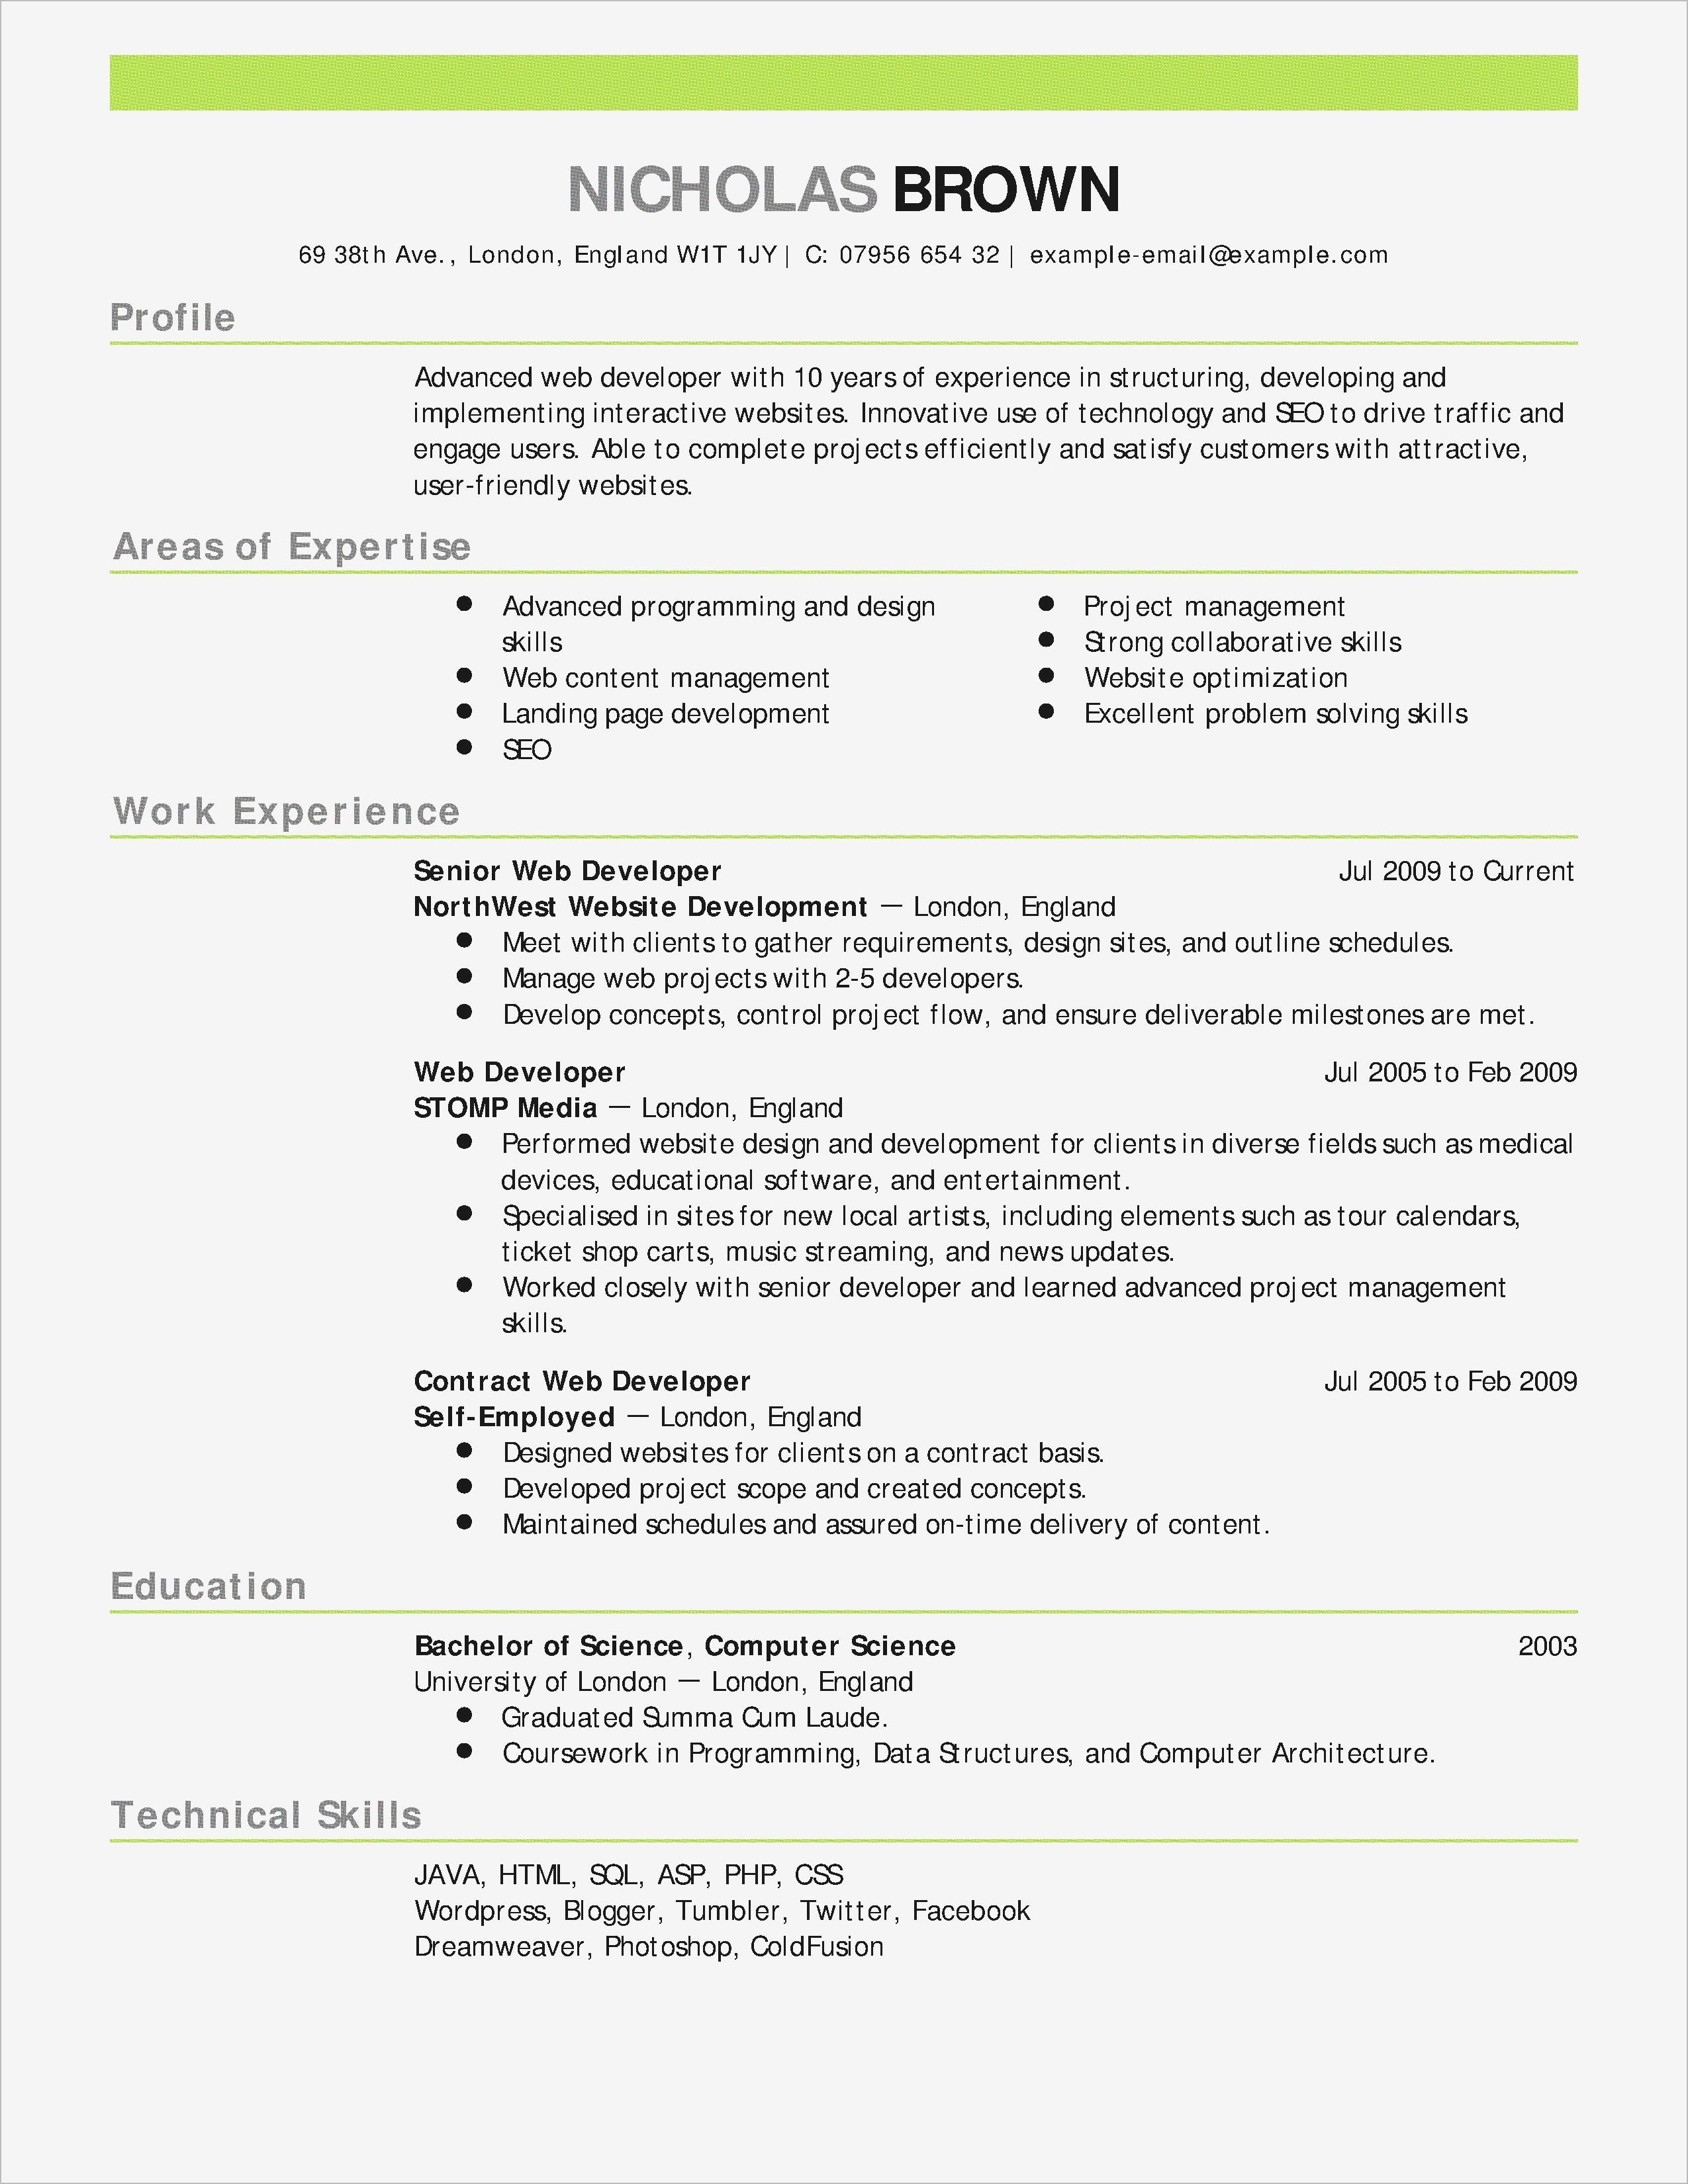 resume template word 2003 example-Elegant Free Resume Template for Word 20-l